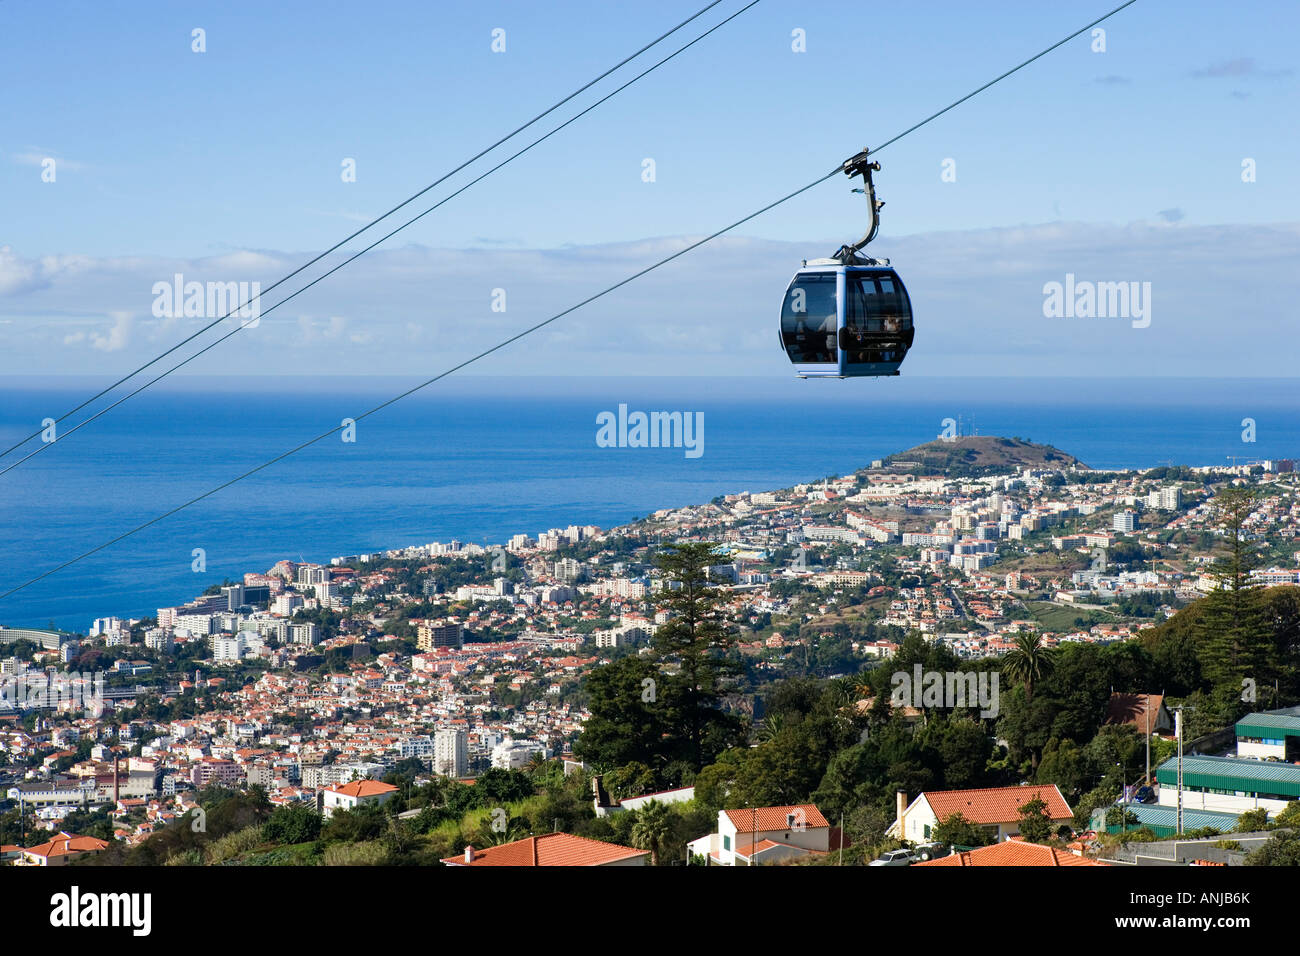 Cable Automotive Oklahoma City : View over city and monte cable car funchal madeira